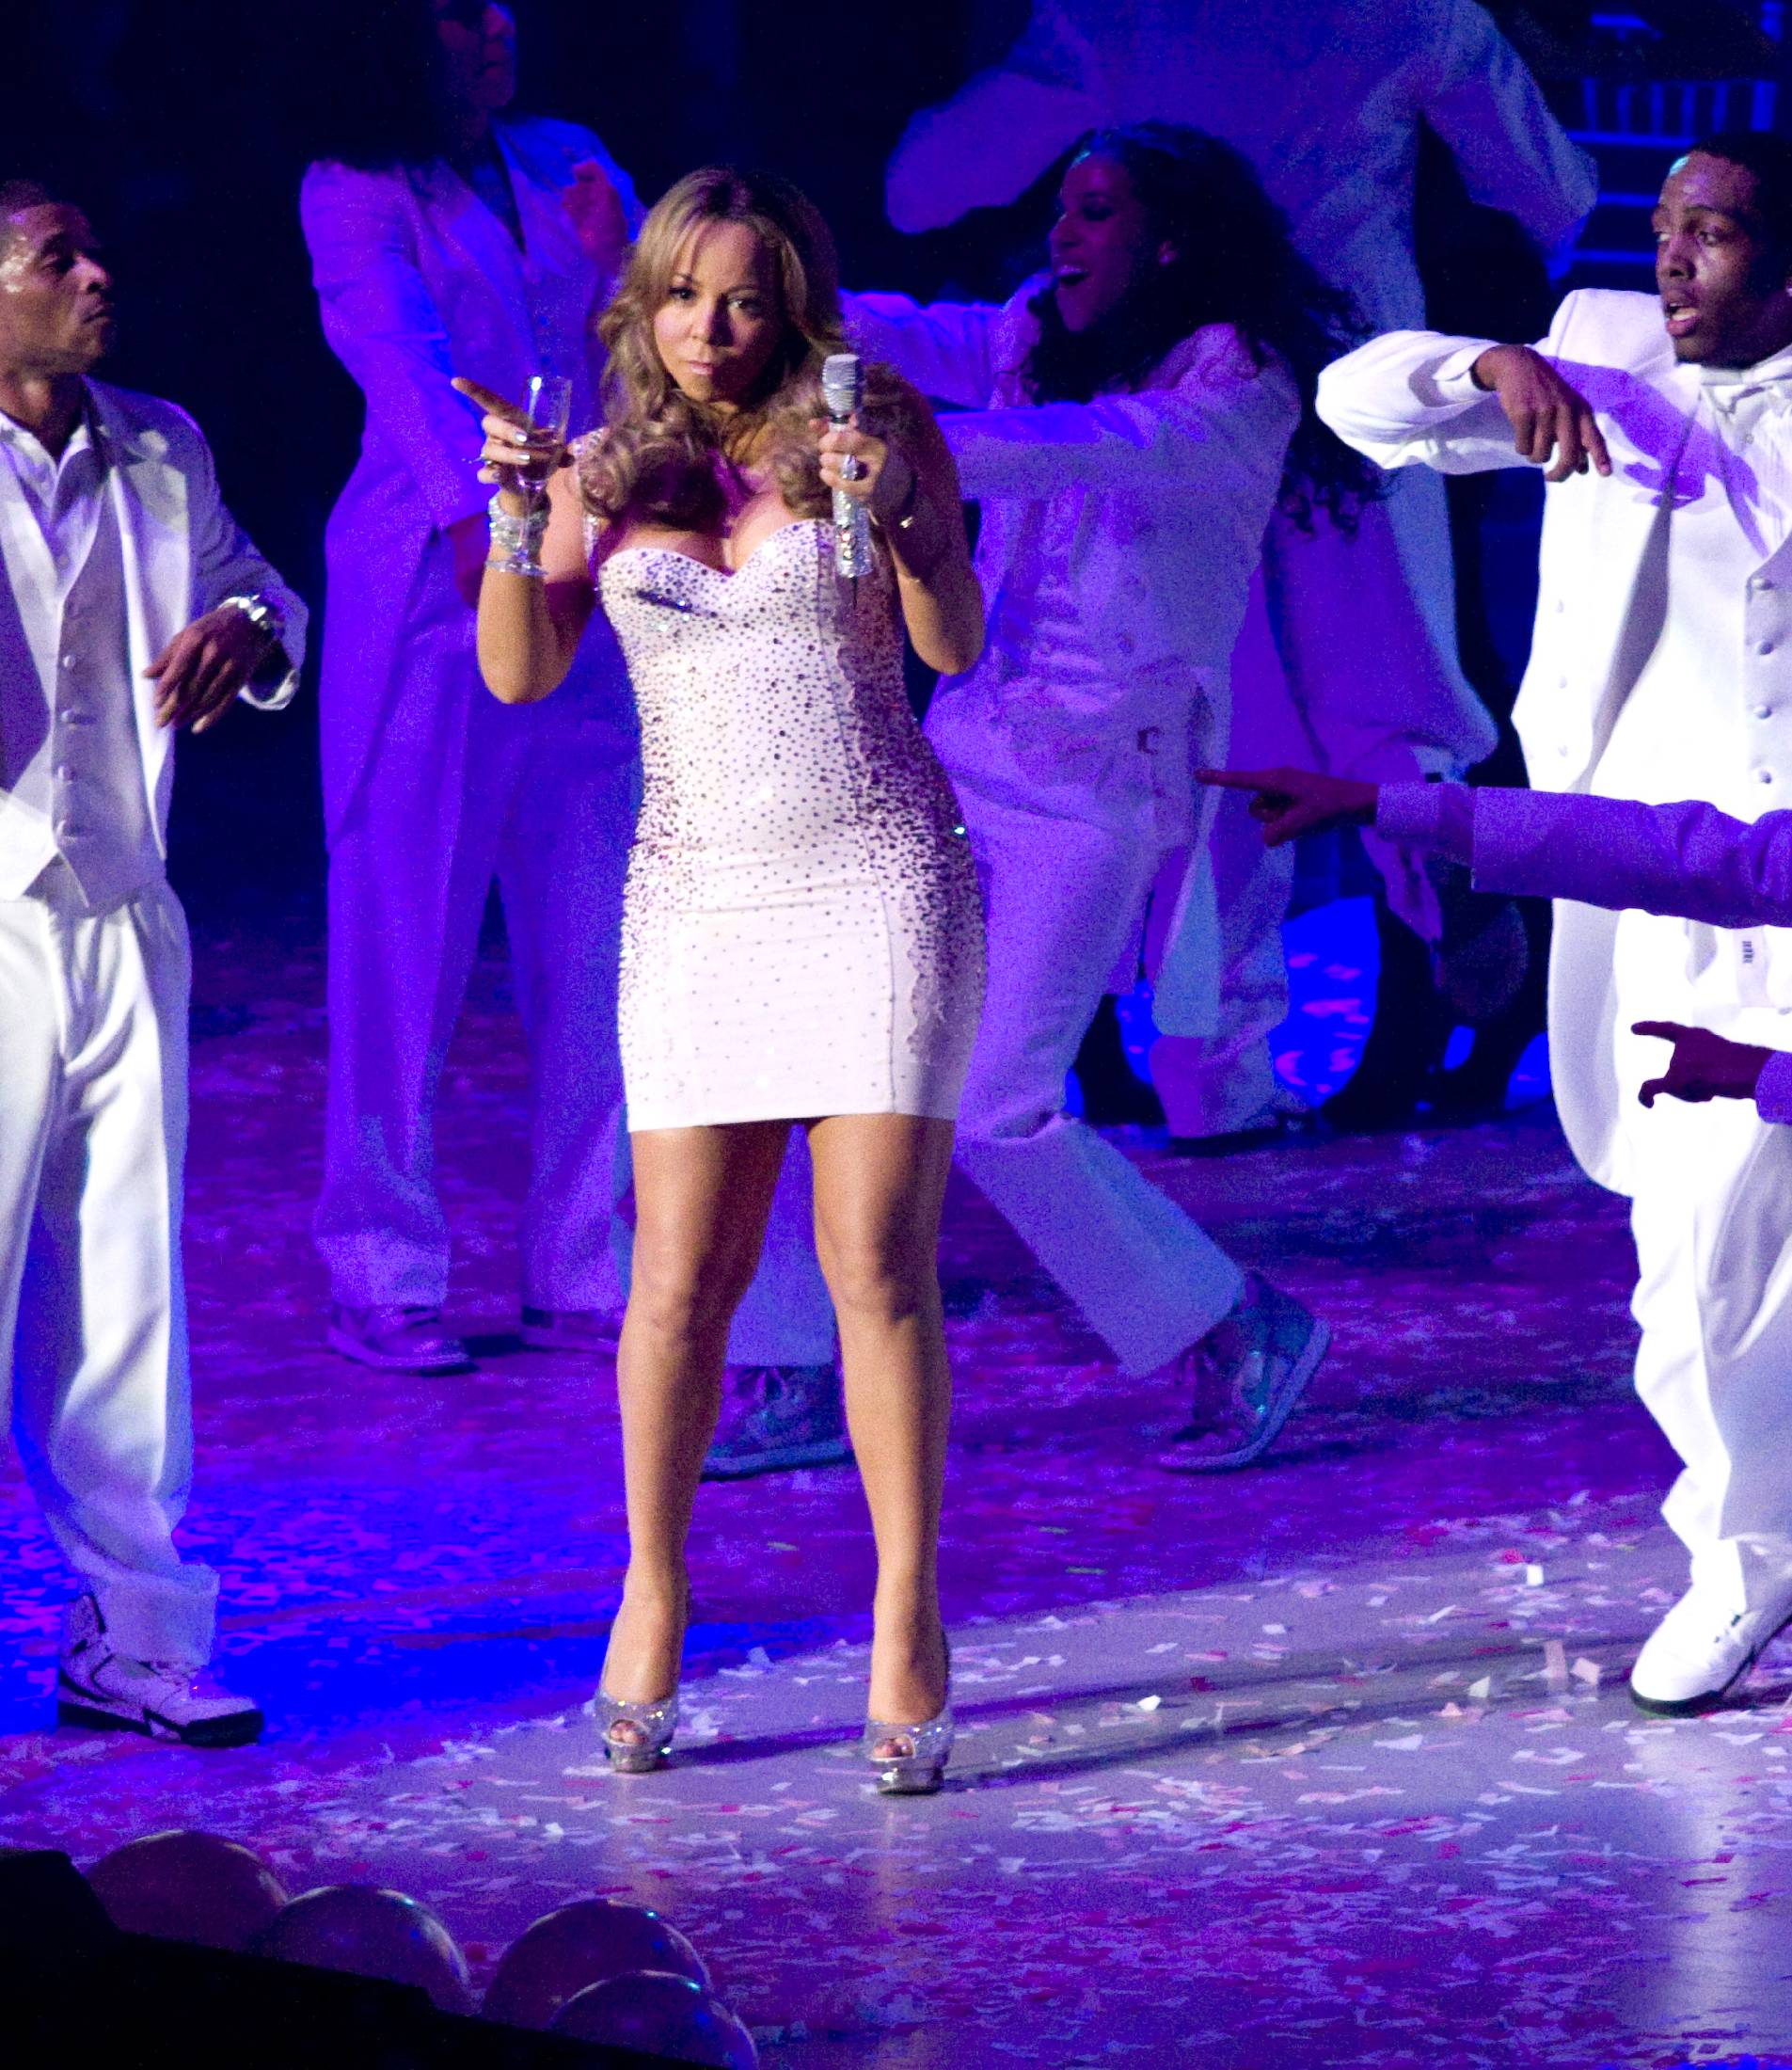 53375_Mariah_Carey_performs_at_Madison_Square_Garden_in_New_York_City-18_122_41lo.jpg